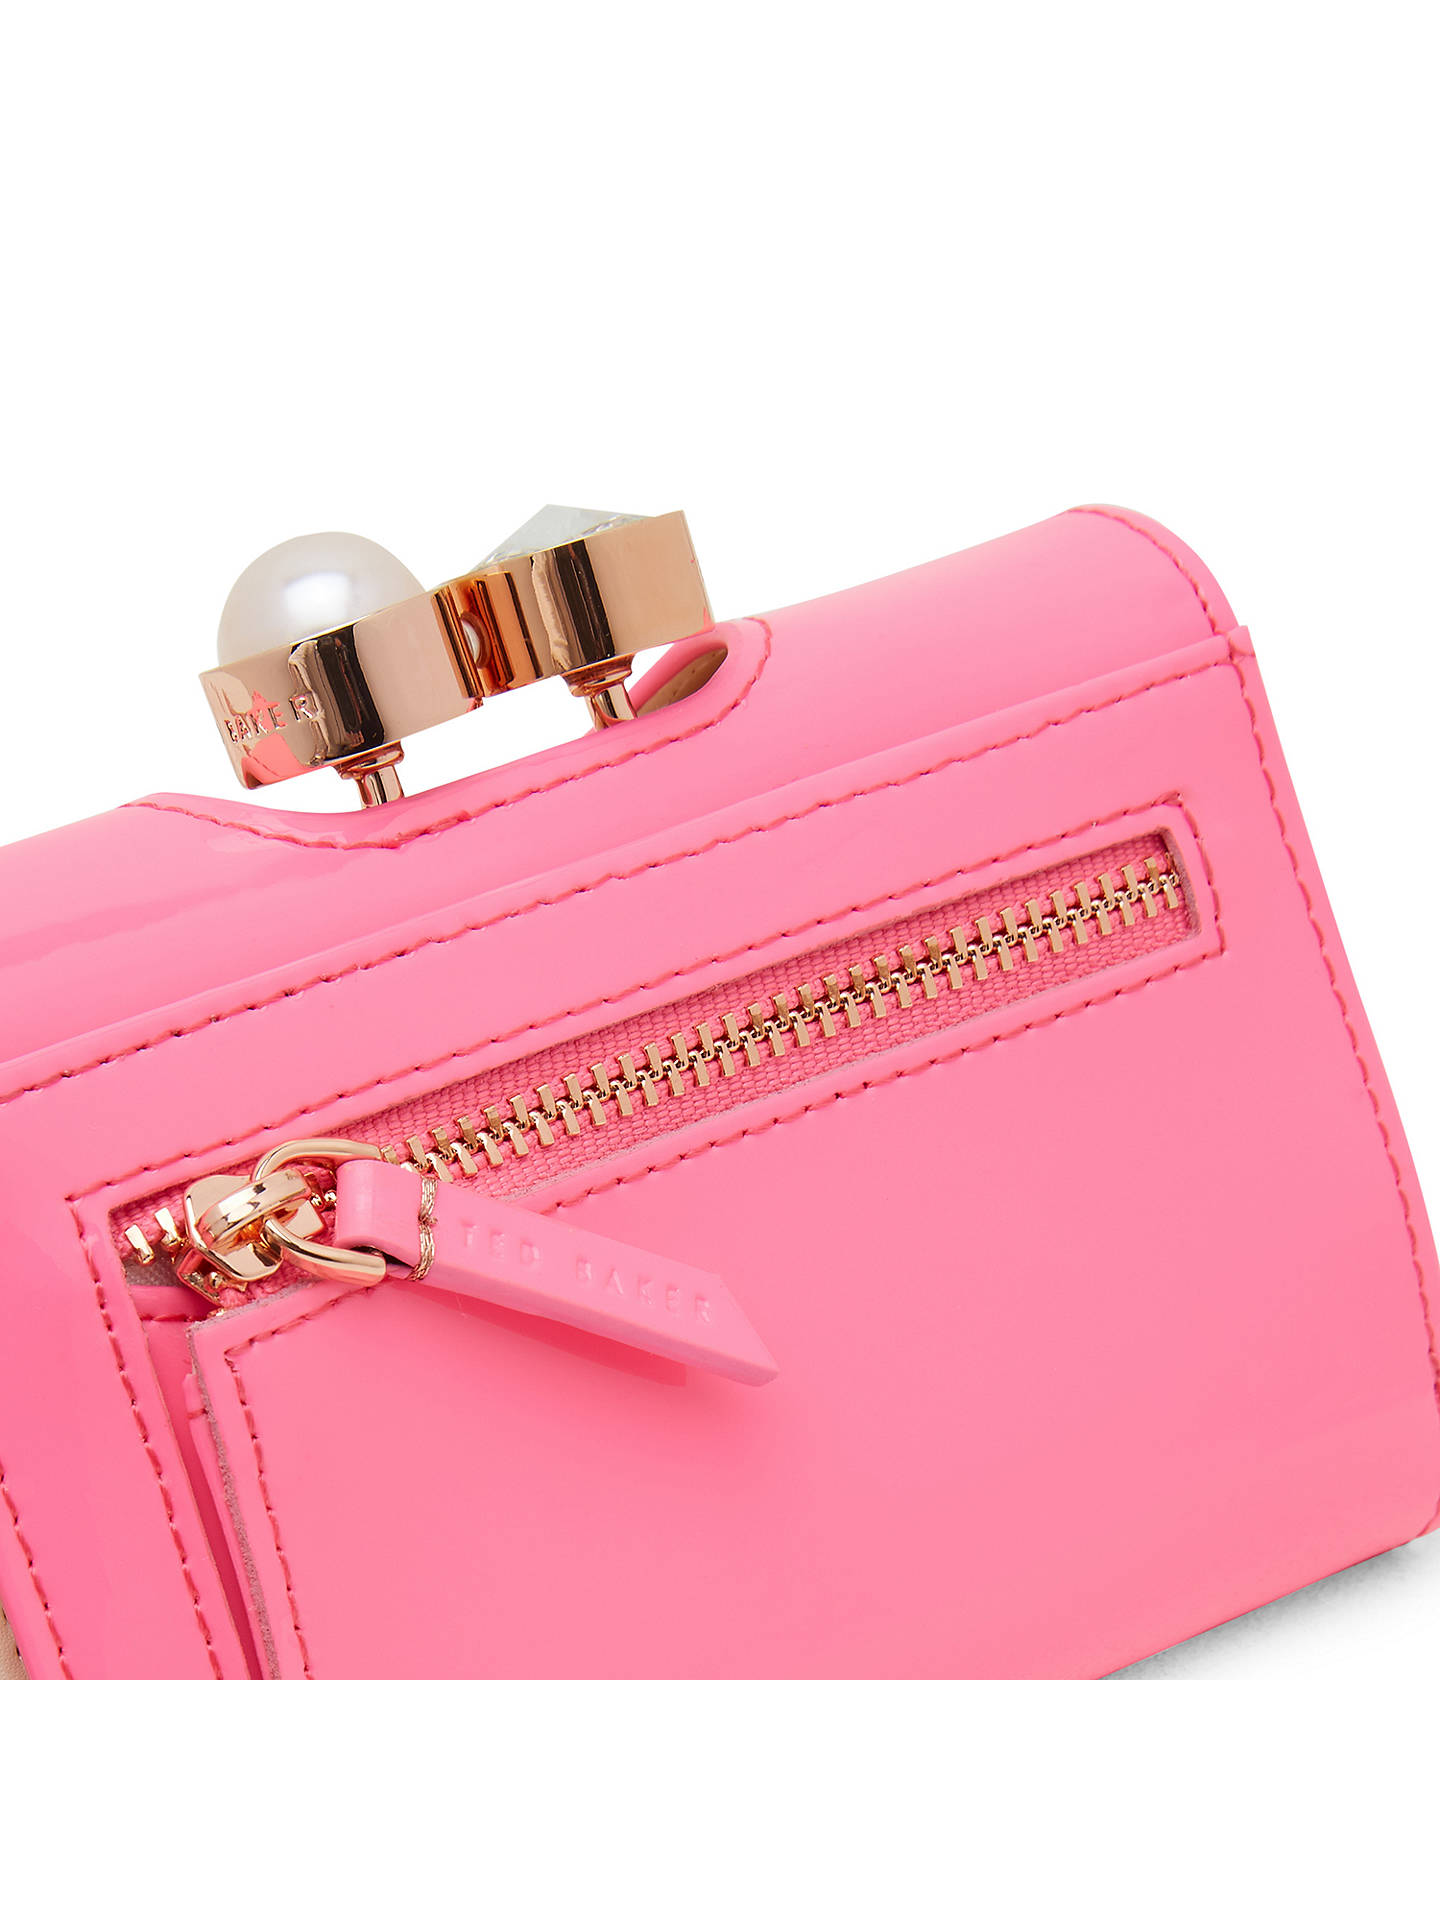 BuyTed Baker Alix Leather Patent Purse, Baby Pink Online at johnlewis.com